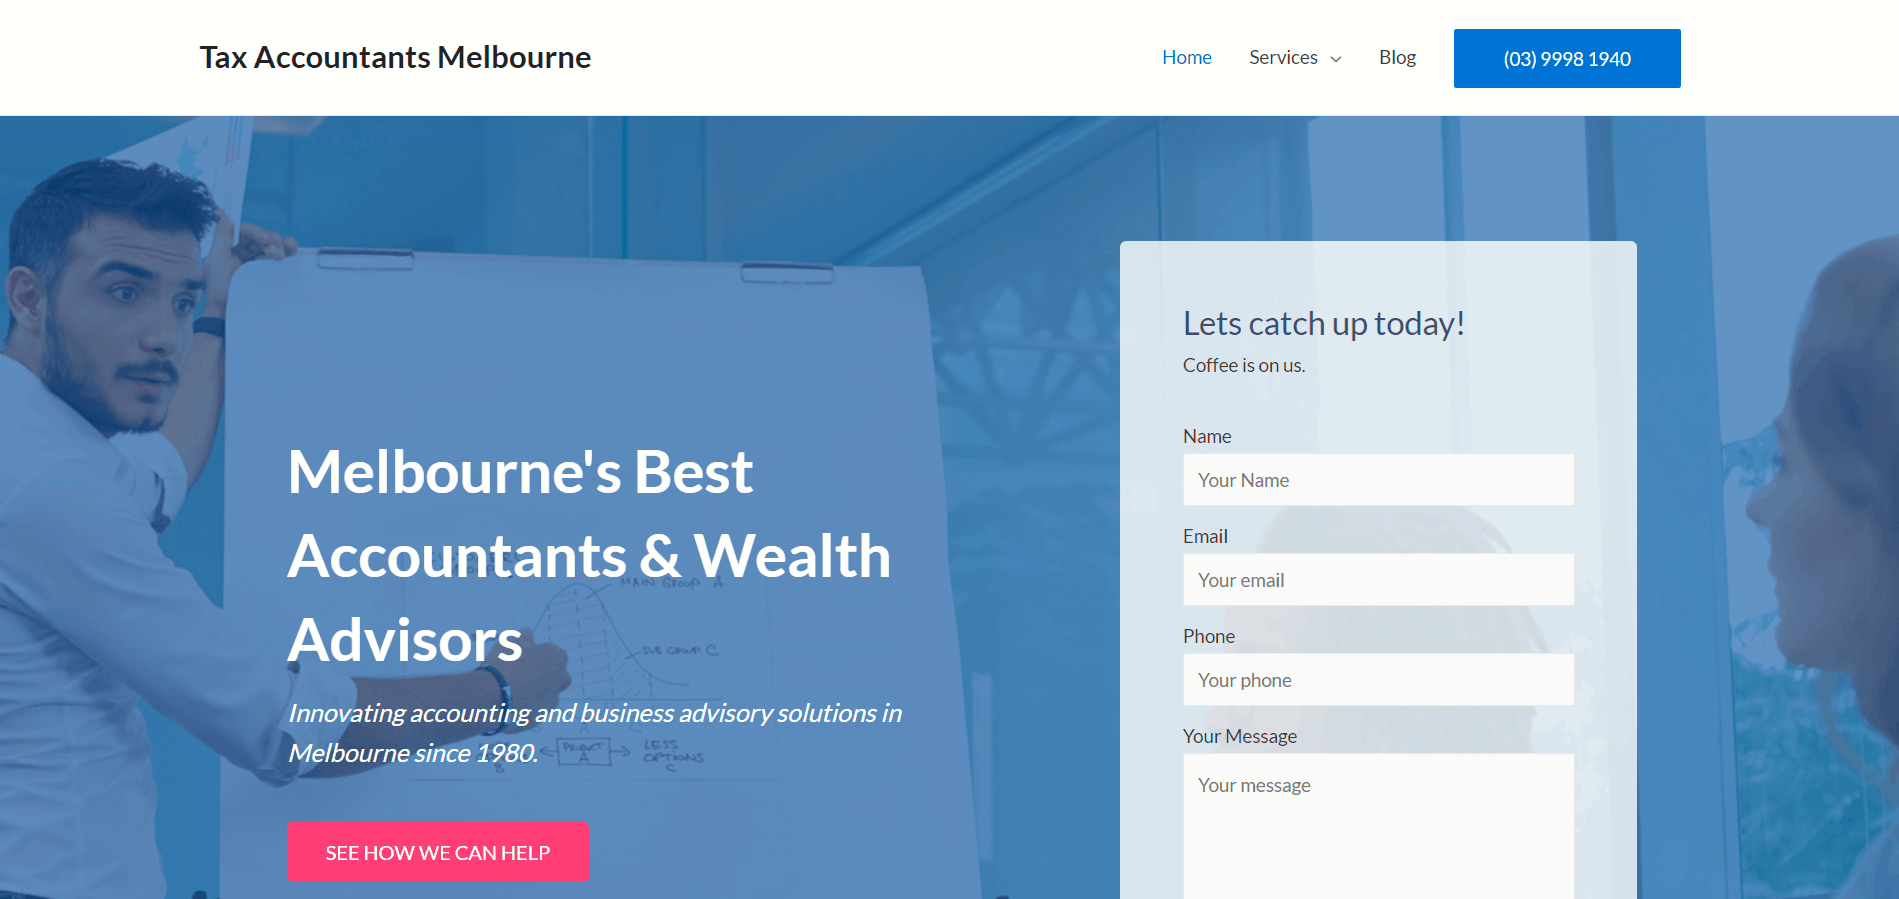 Tax Accountants Melbourne